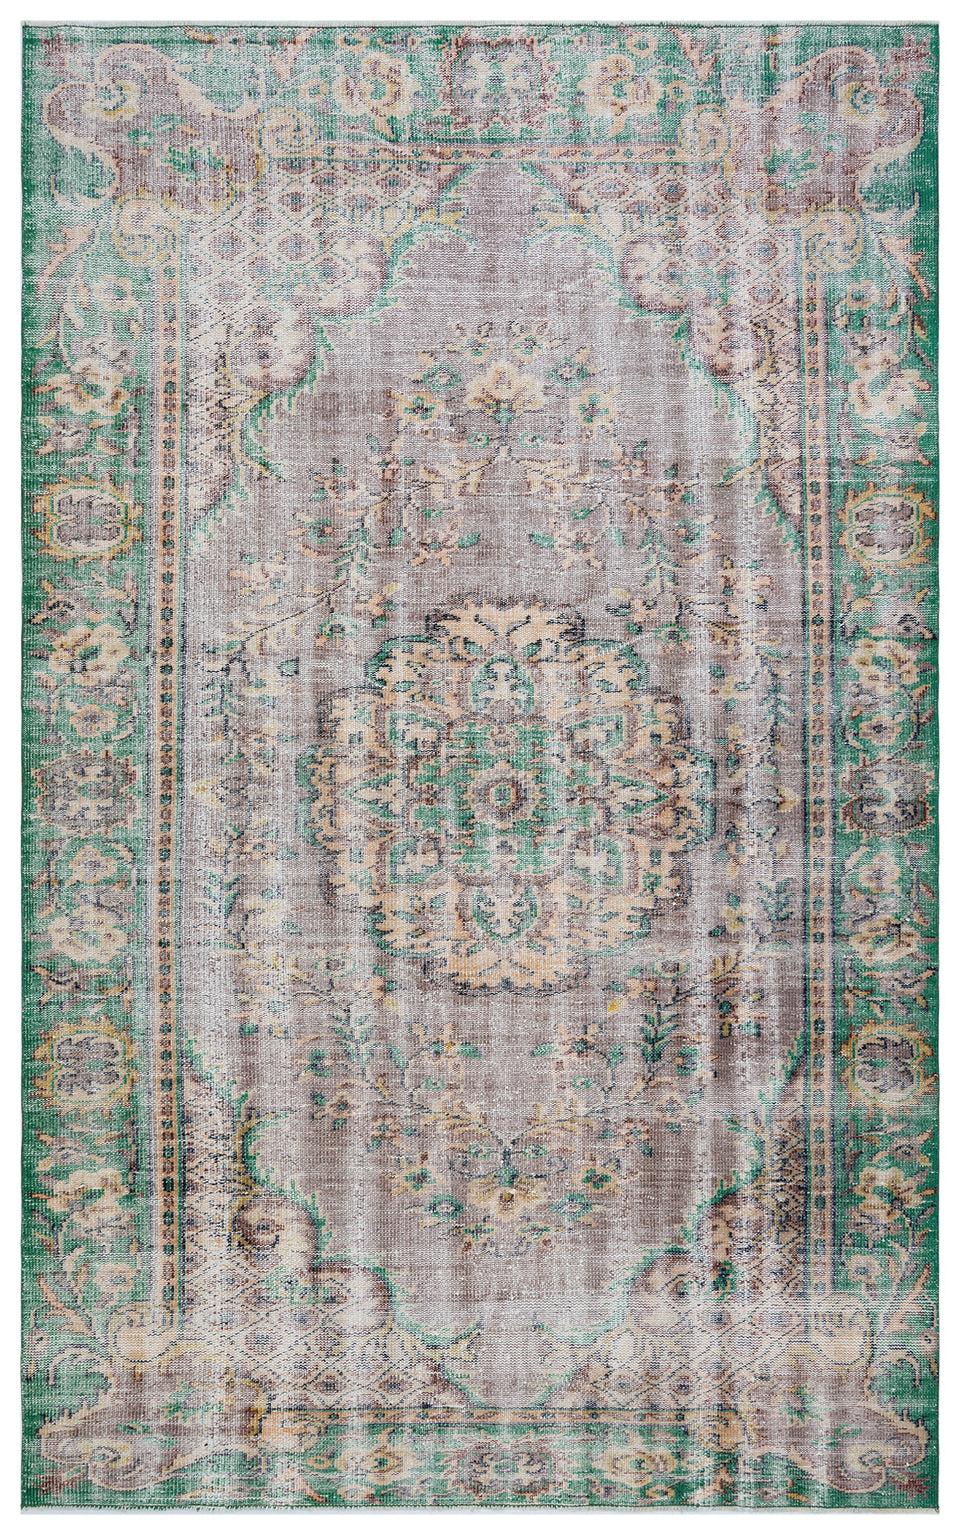 Vintage Turkish Rug, GA28346